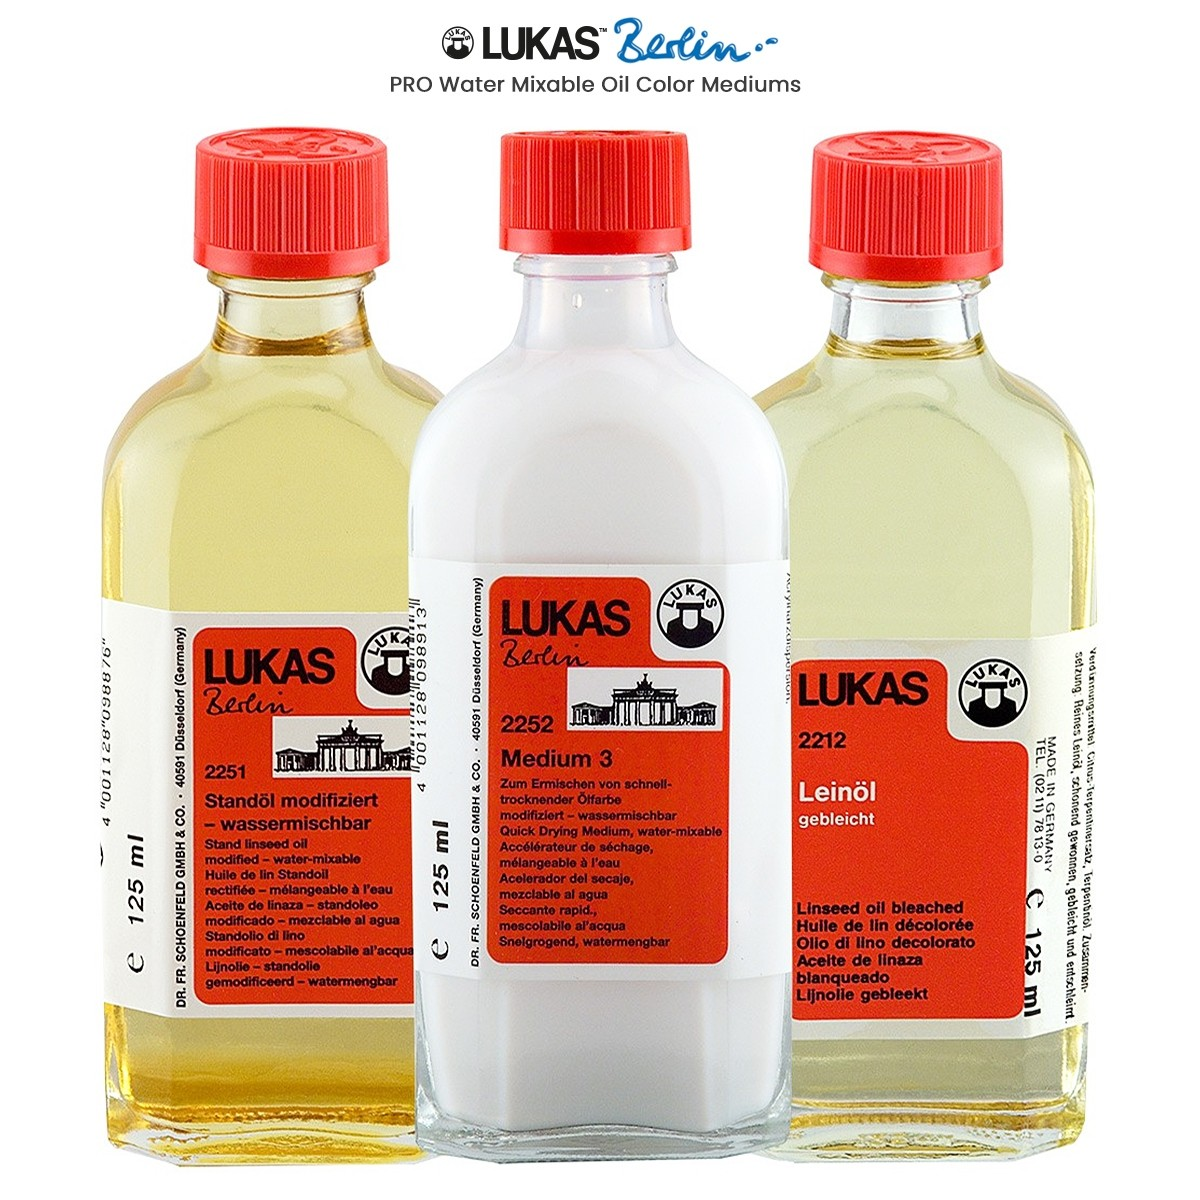 LUKAS Berlin PRO Artists Water Mixable Oil Painting Mediums